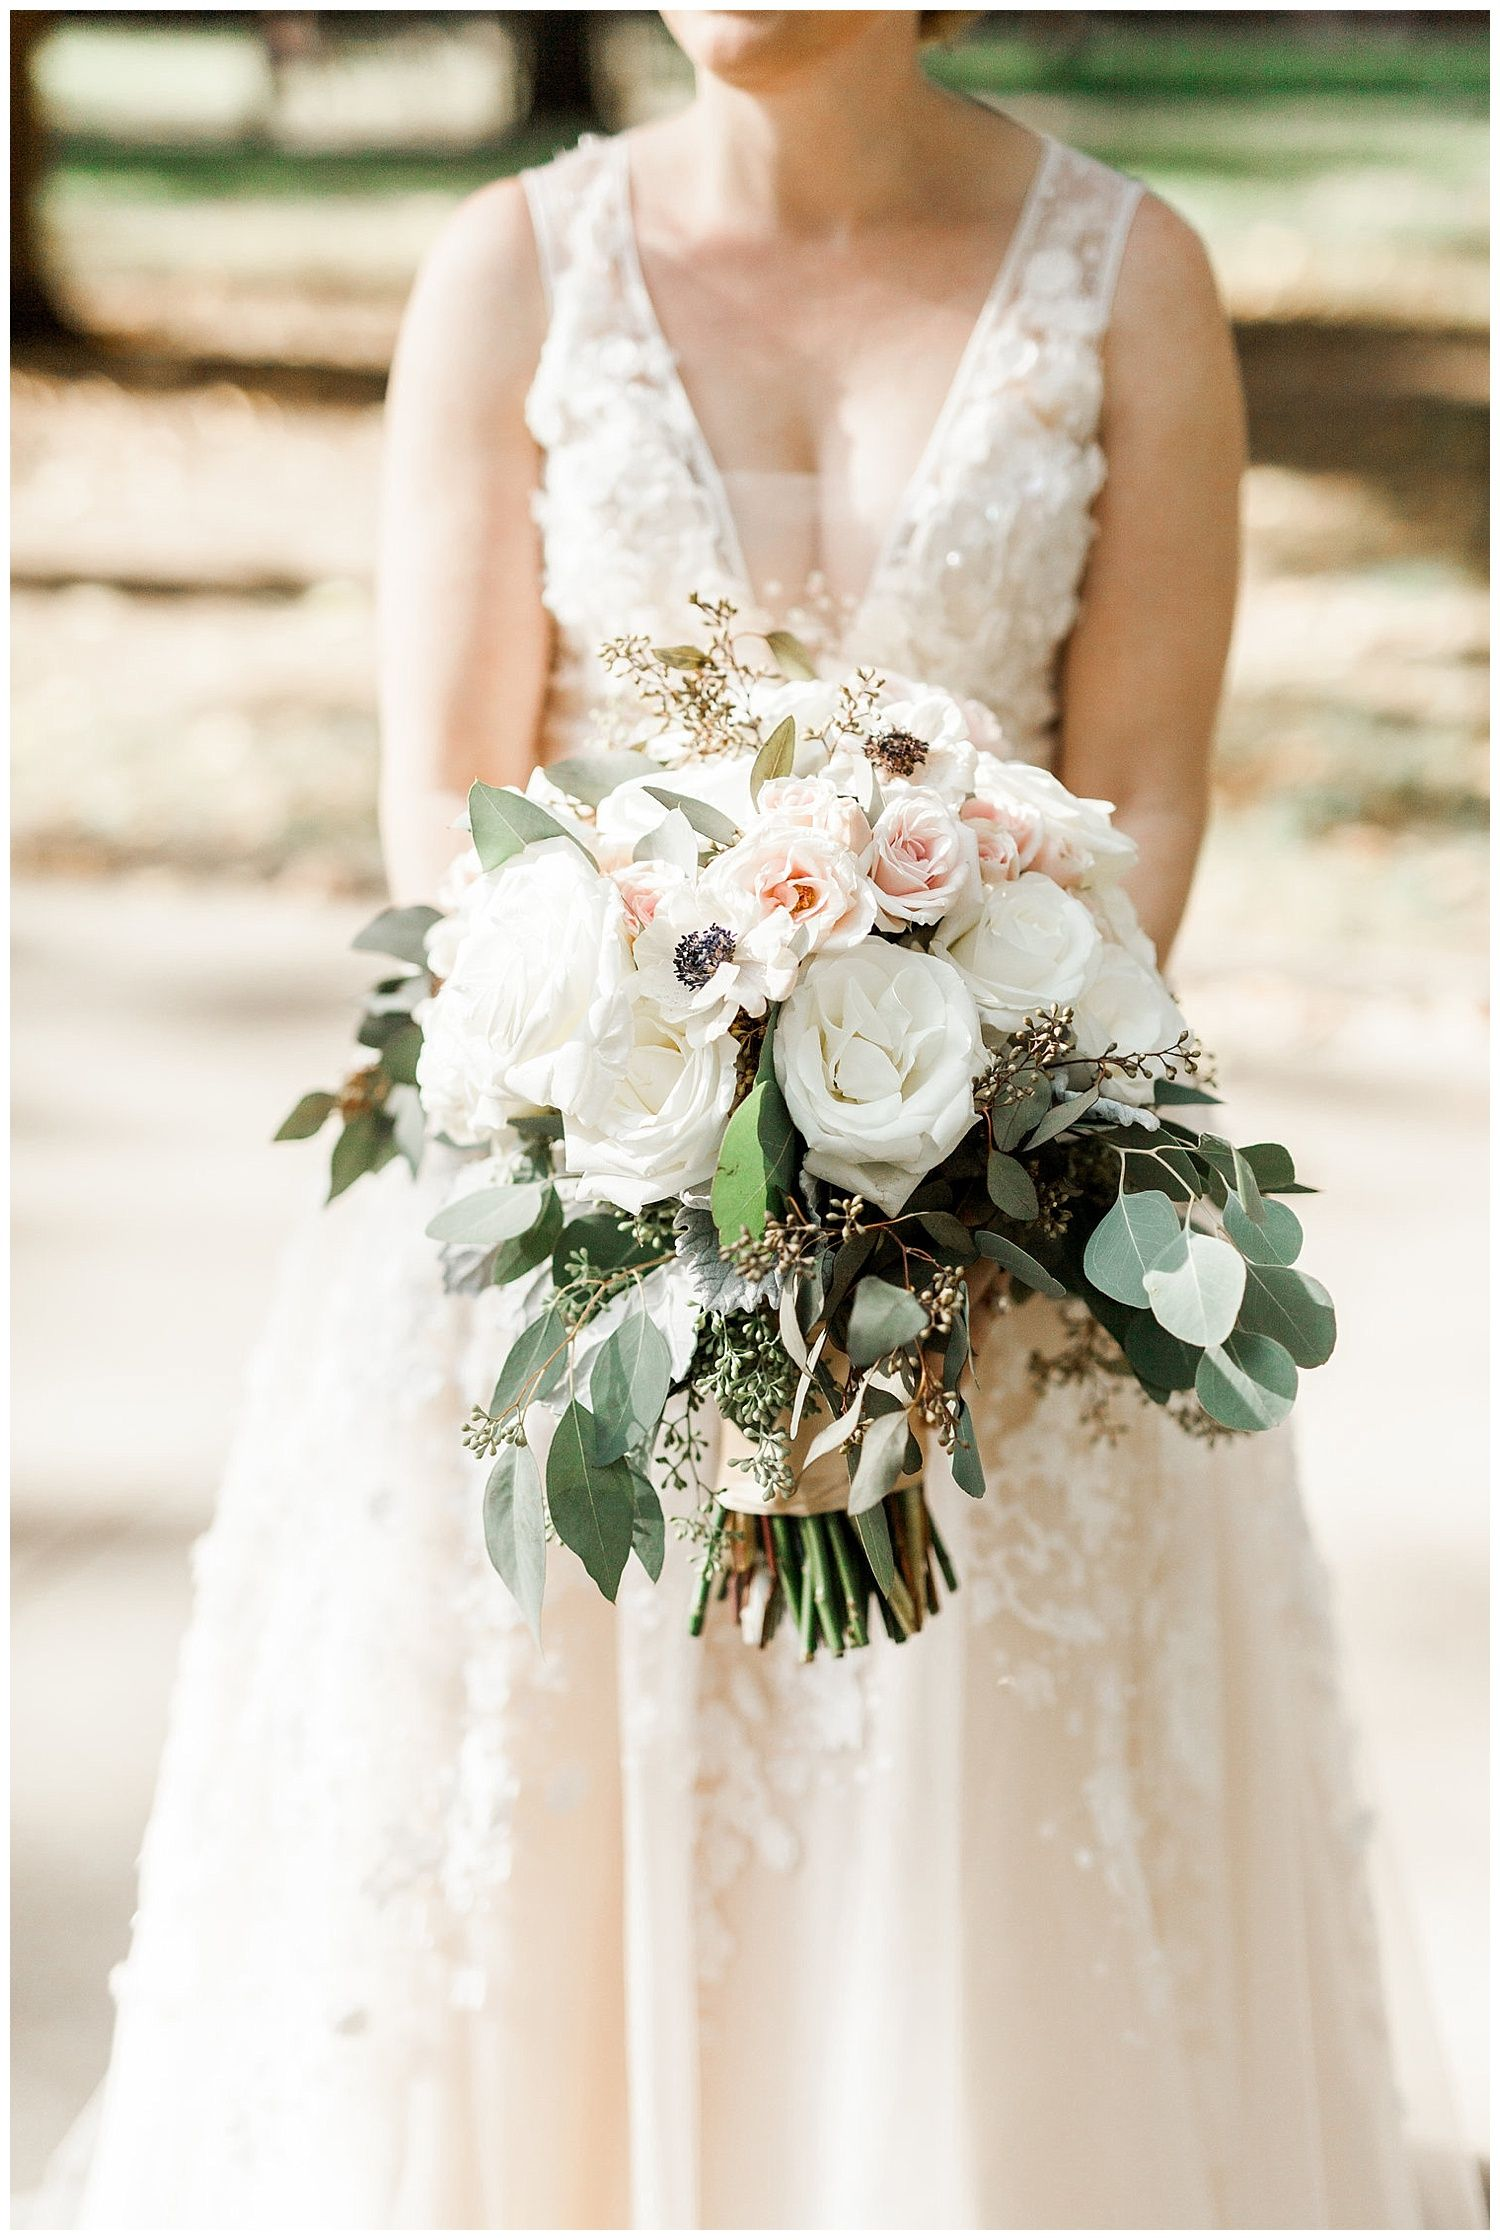 Timeless Fall Wedding At The College Of Physicians Haley Richter